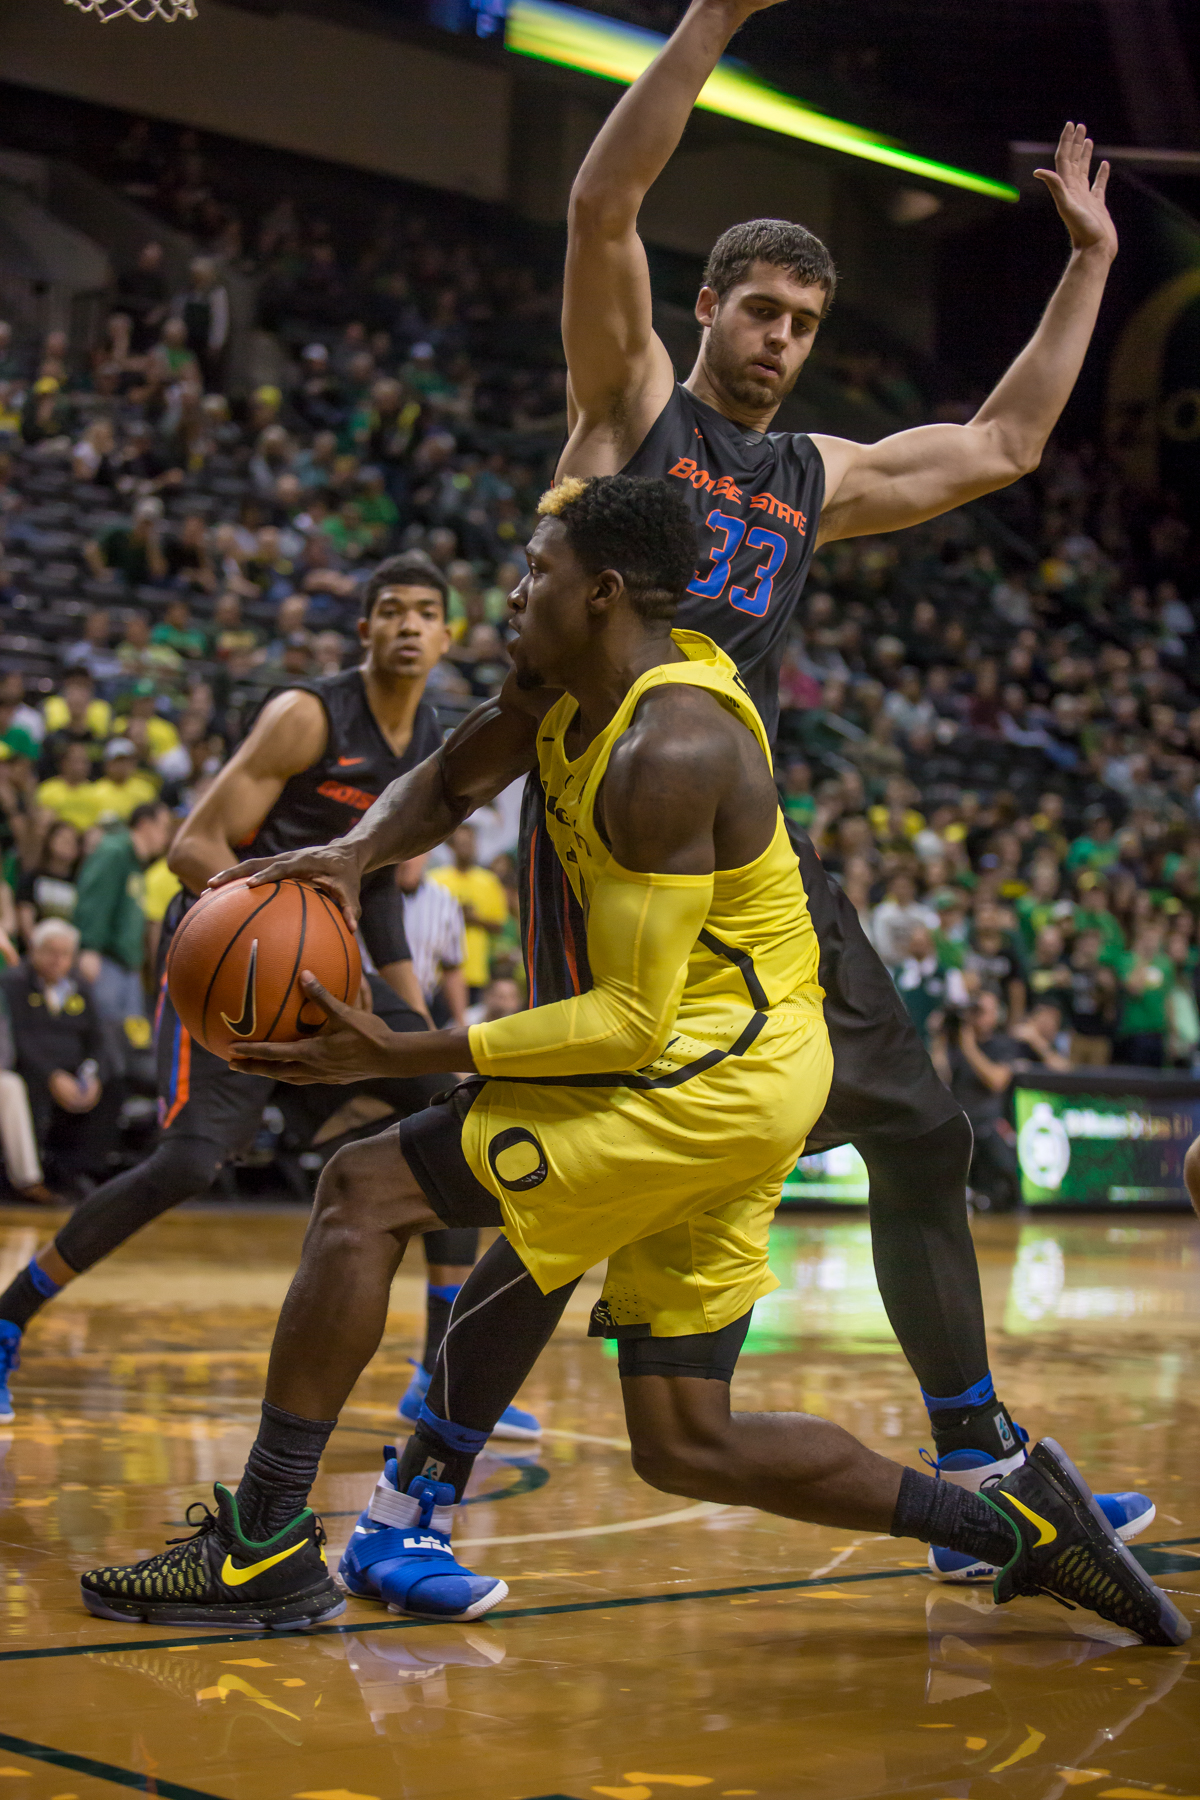 Oregon guard Dylan Ennis (#31) passes the ball around Boise State forward David Wacker (#33). After trailing for most of the game, the Oregon Ducks defeated the Boise State Broncos 68-63. Photo by Dillon Vibes